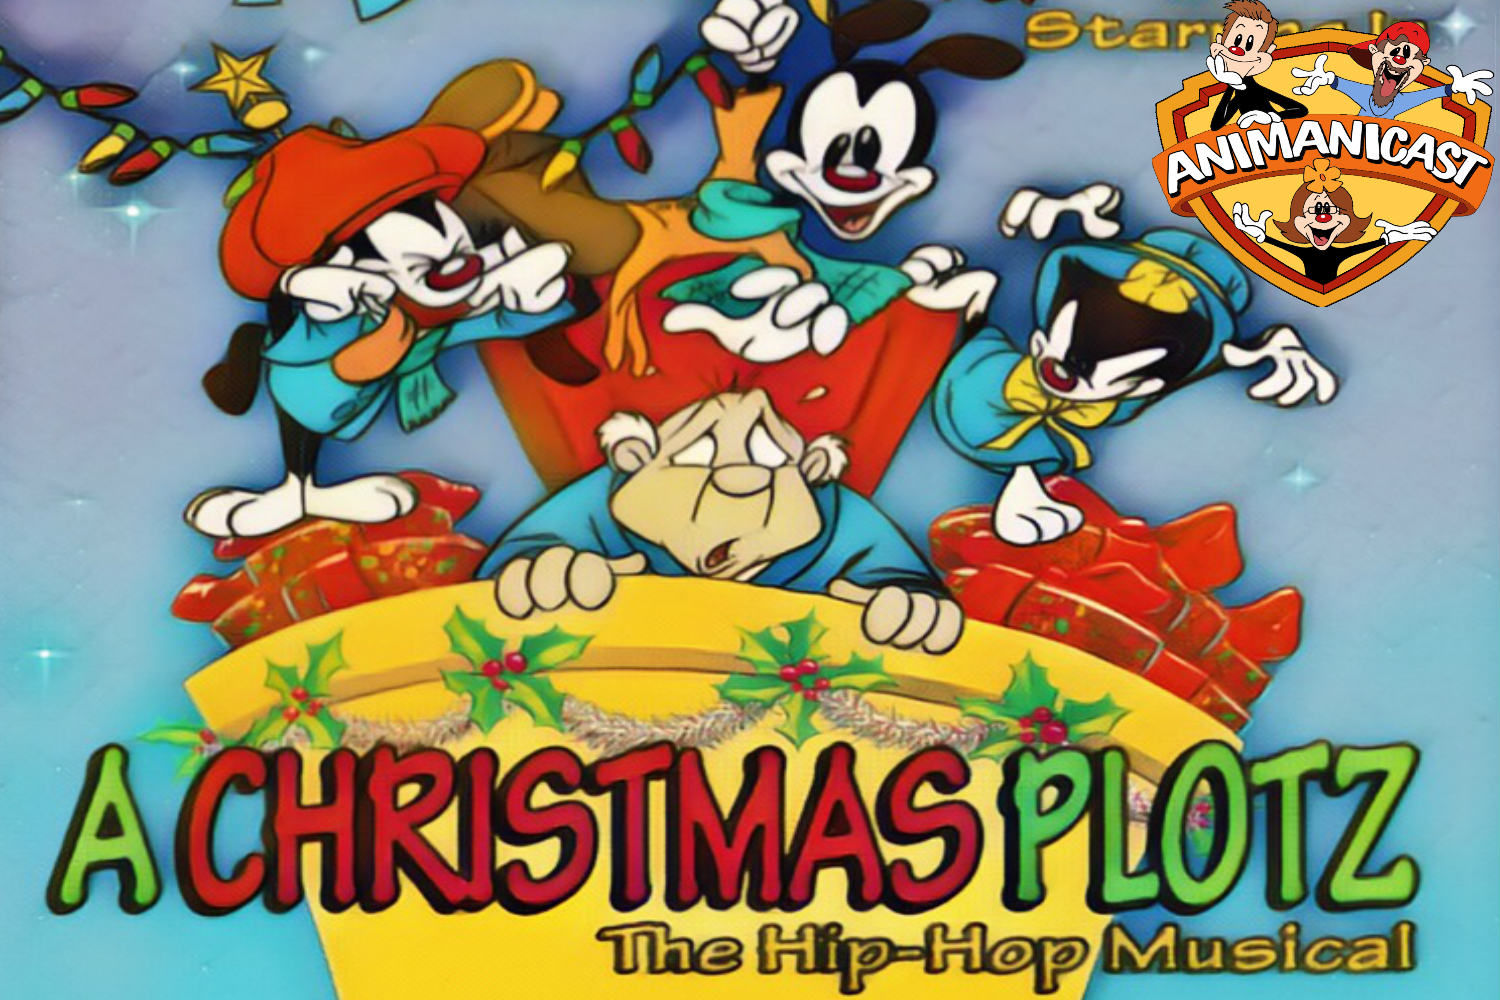 """Animanicast: Discussing the Animaniacs Hip Hopera Musical """"A Christmas Plotz"""""""